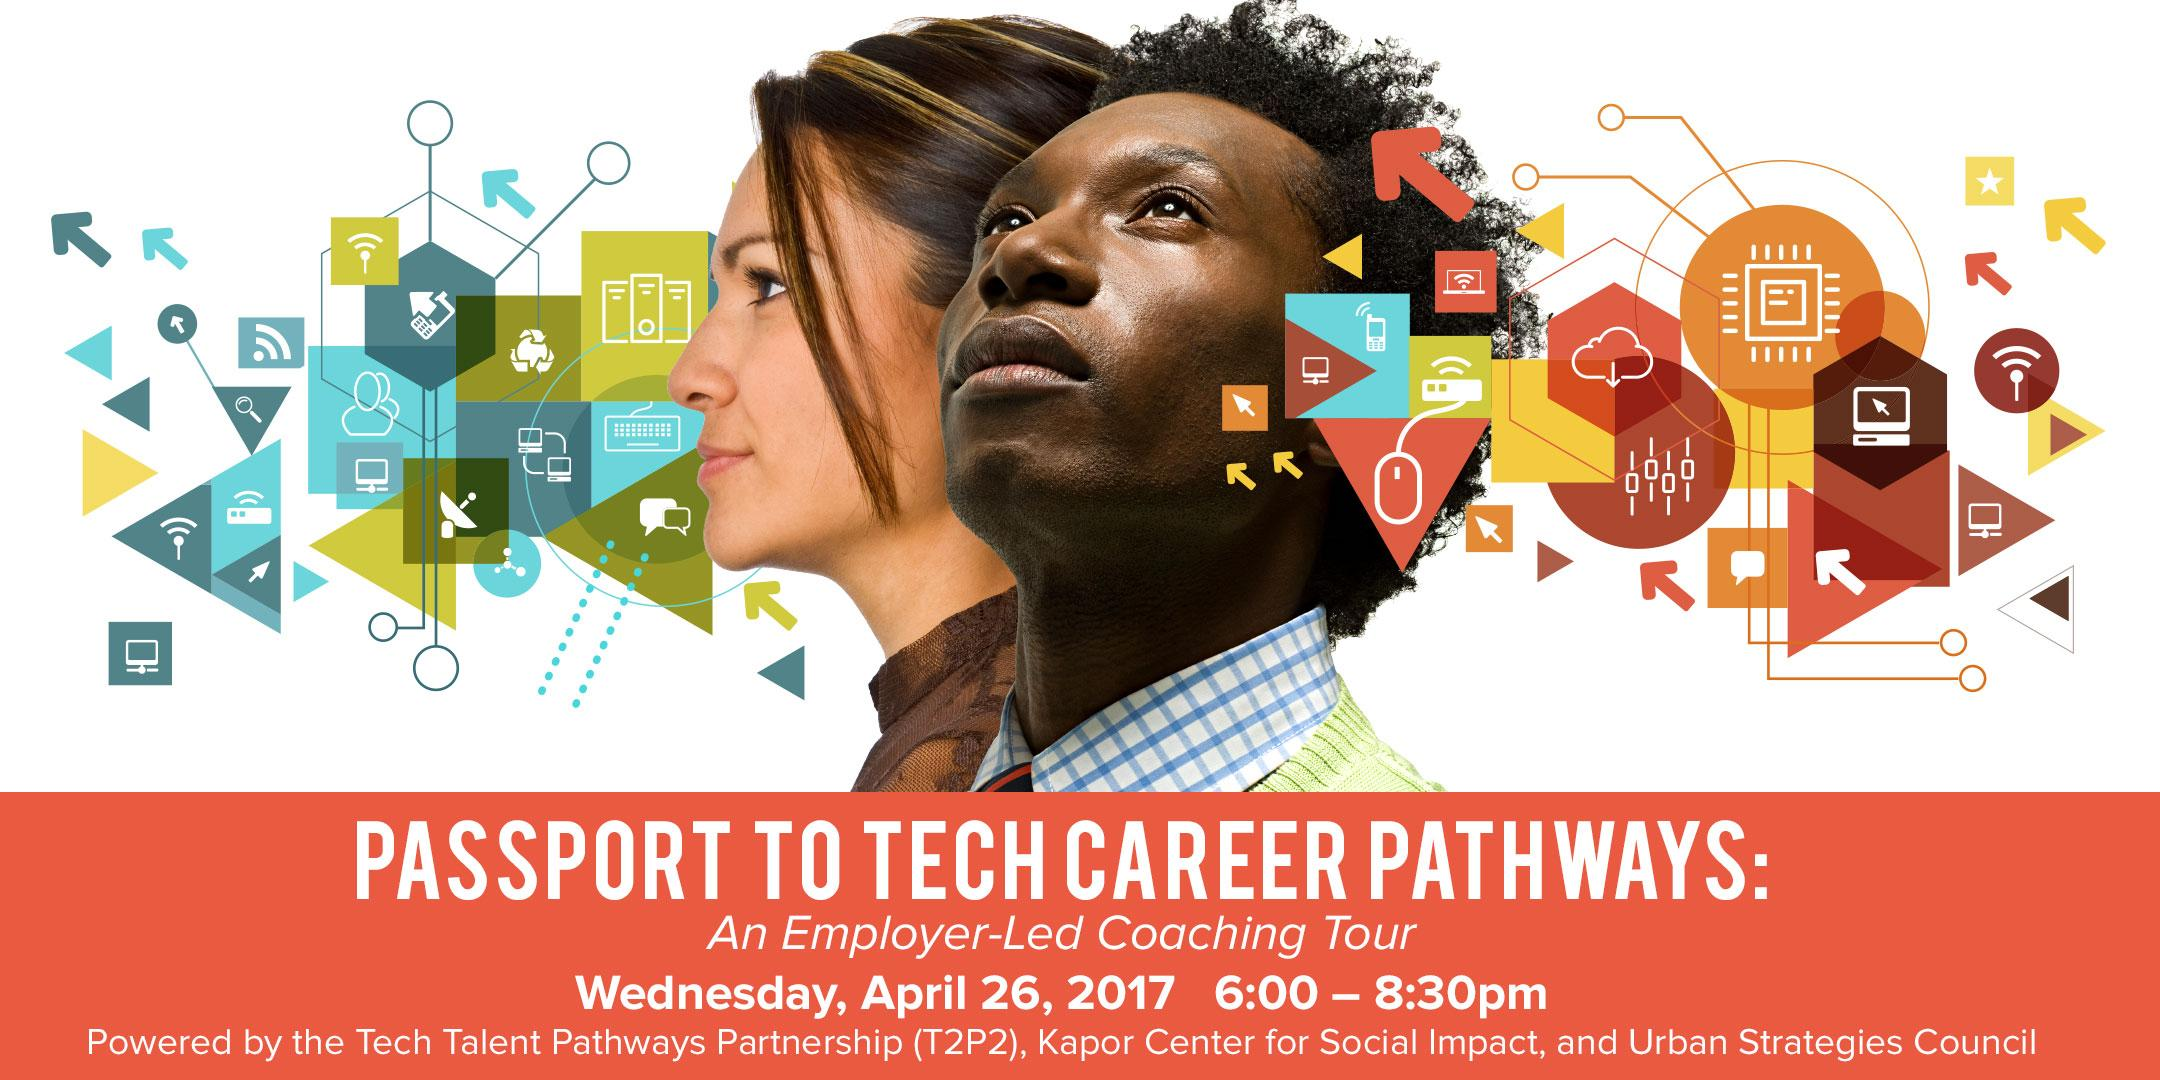 Passport to Tech Career Pathways: An Employer